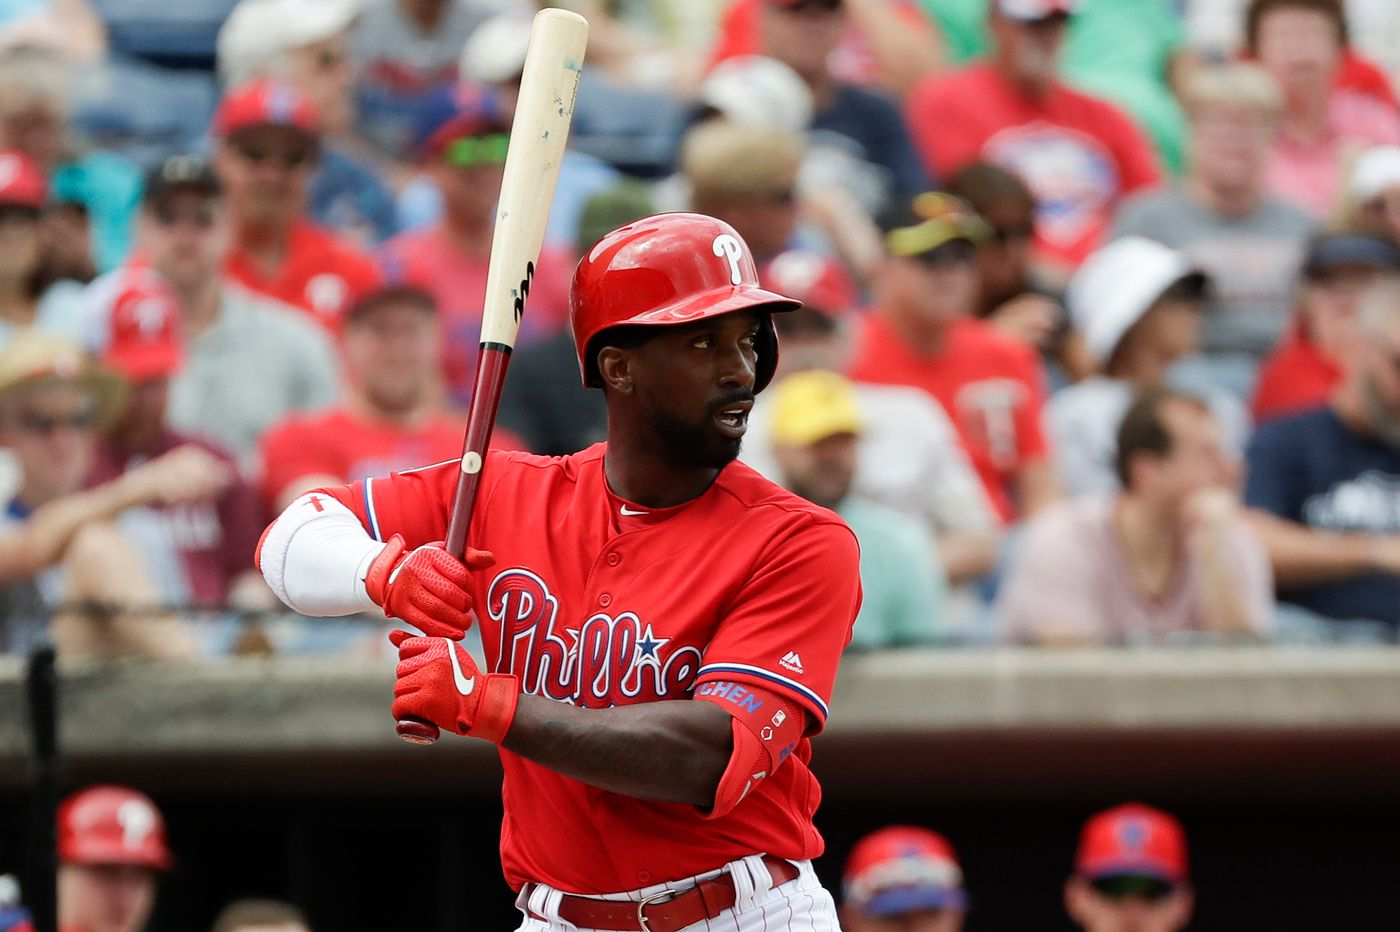 Phillies' Andrew McCutchen confident he'll be ready for opening day after major knee surgery